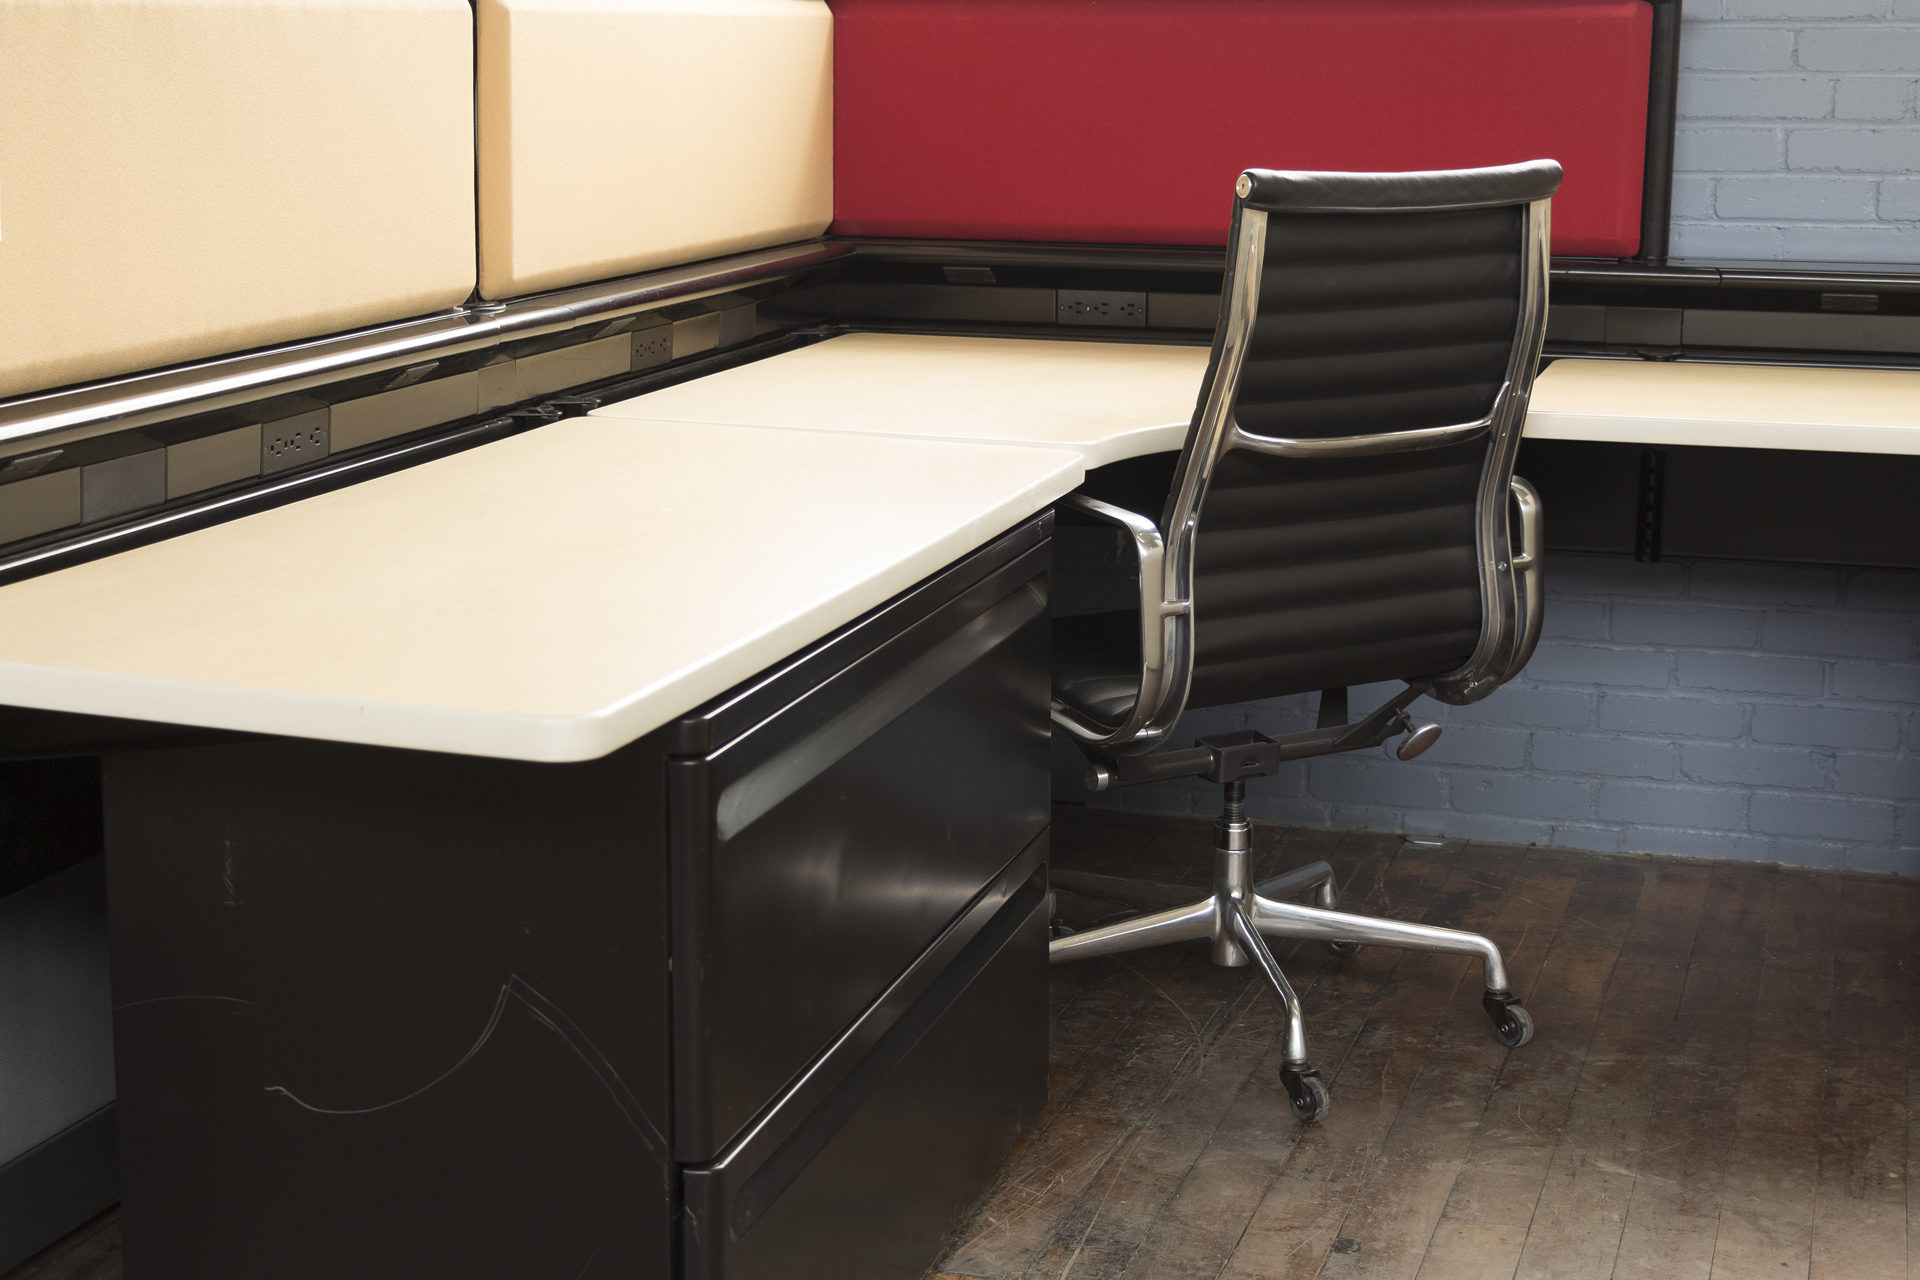 peartreeofficefurniture_peartreeofficefurniture_mg_3588.jpg